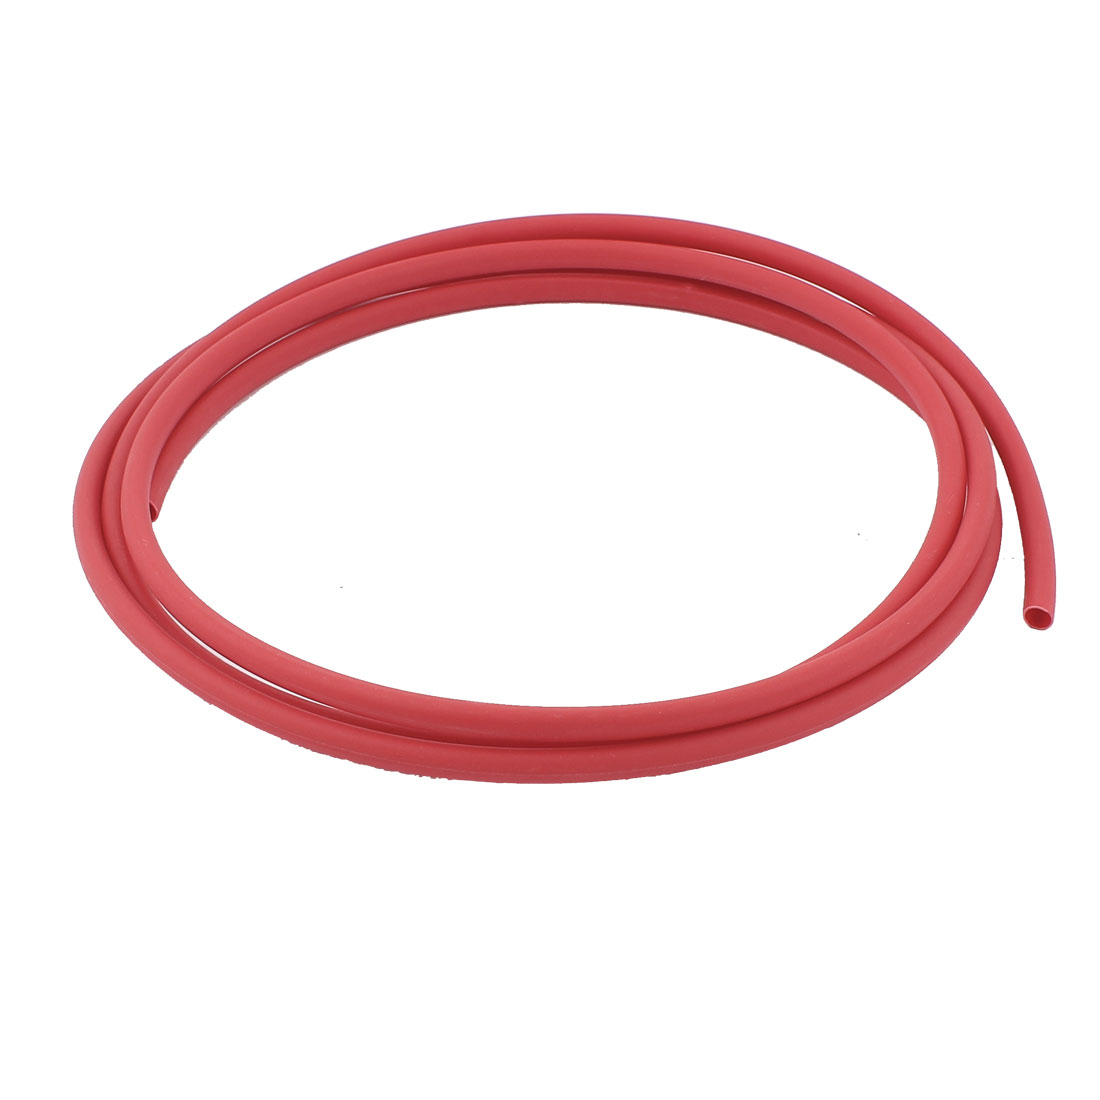 "4.8mm 3/16"" Dual-Wall 3:1 Adhesive Lined Heat Shrink Tubing Tube 2M Red"